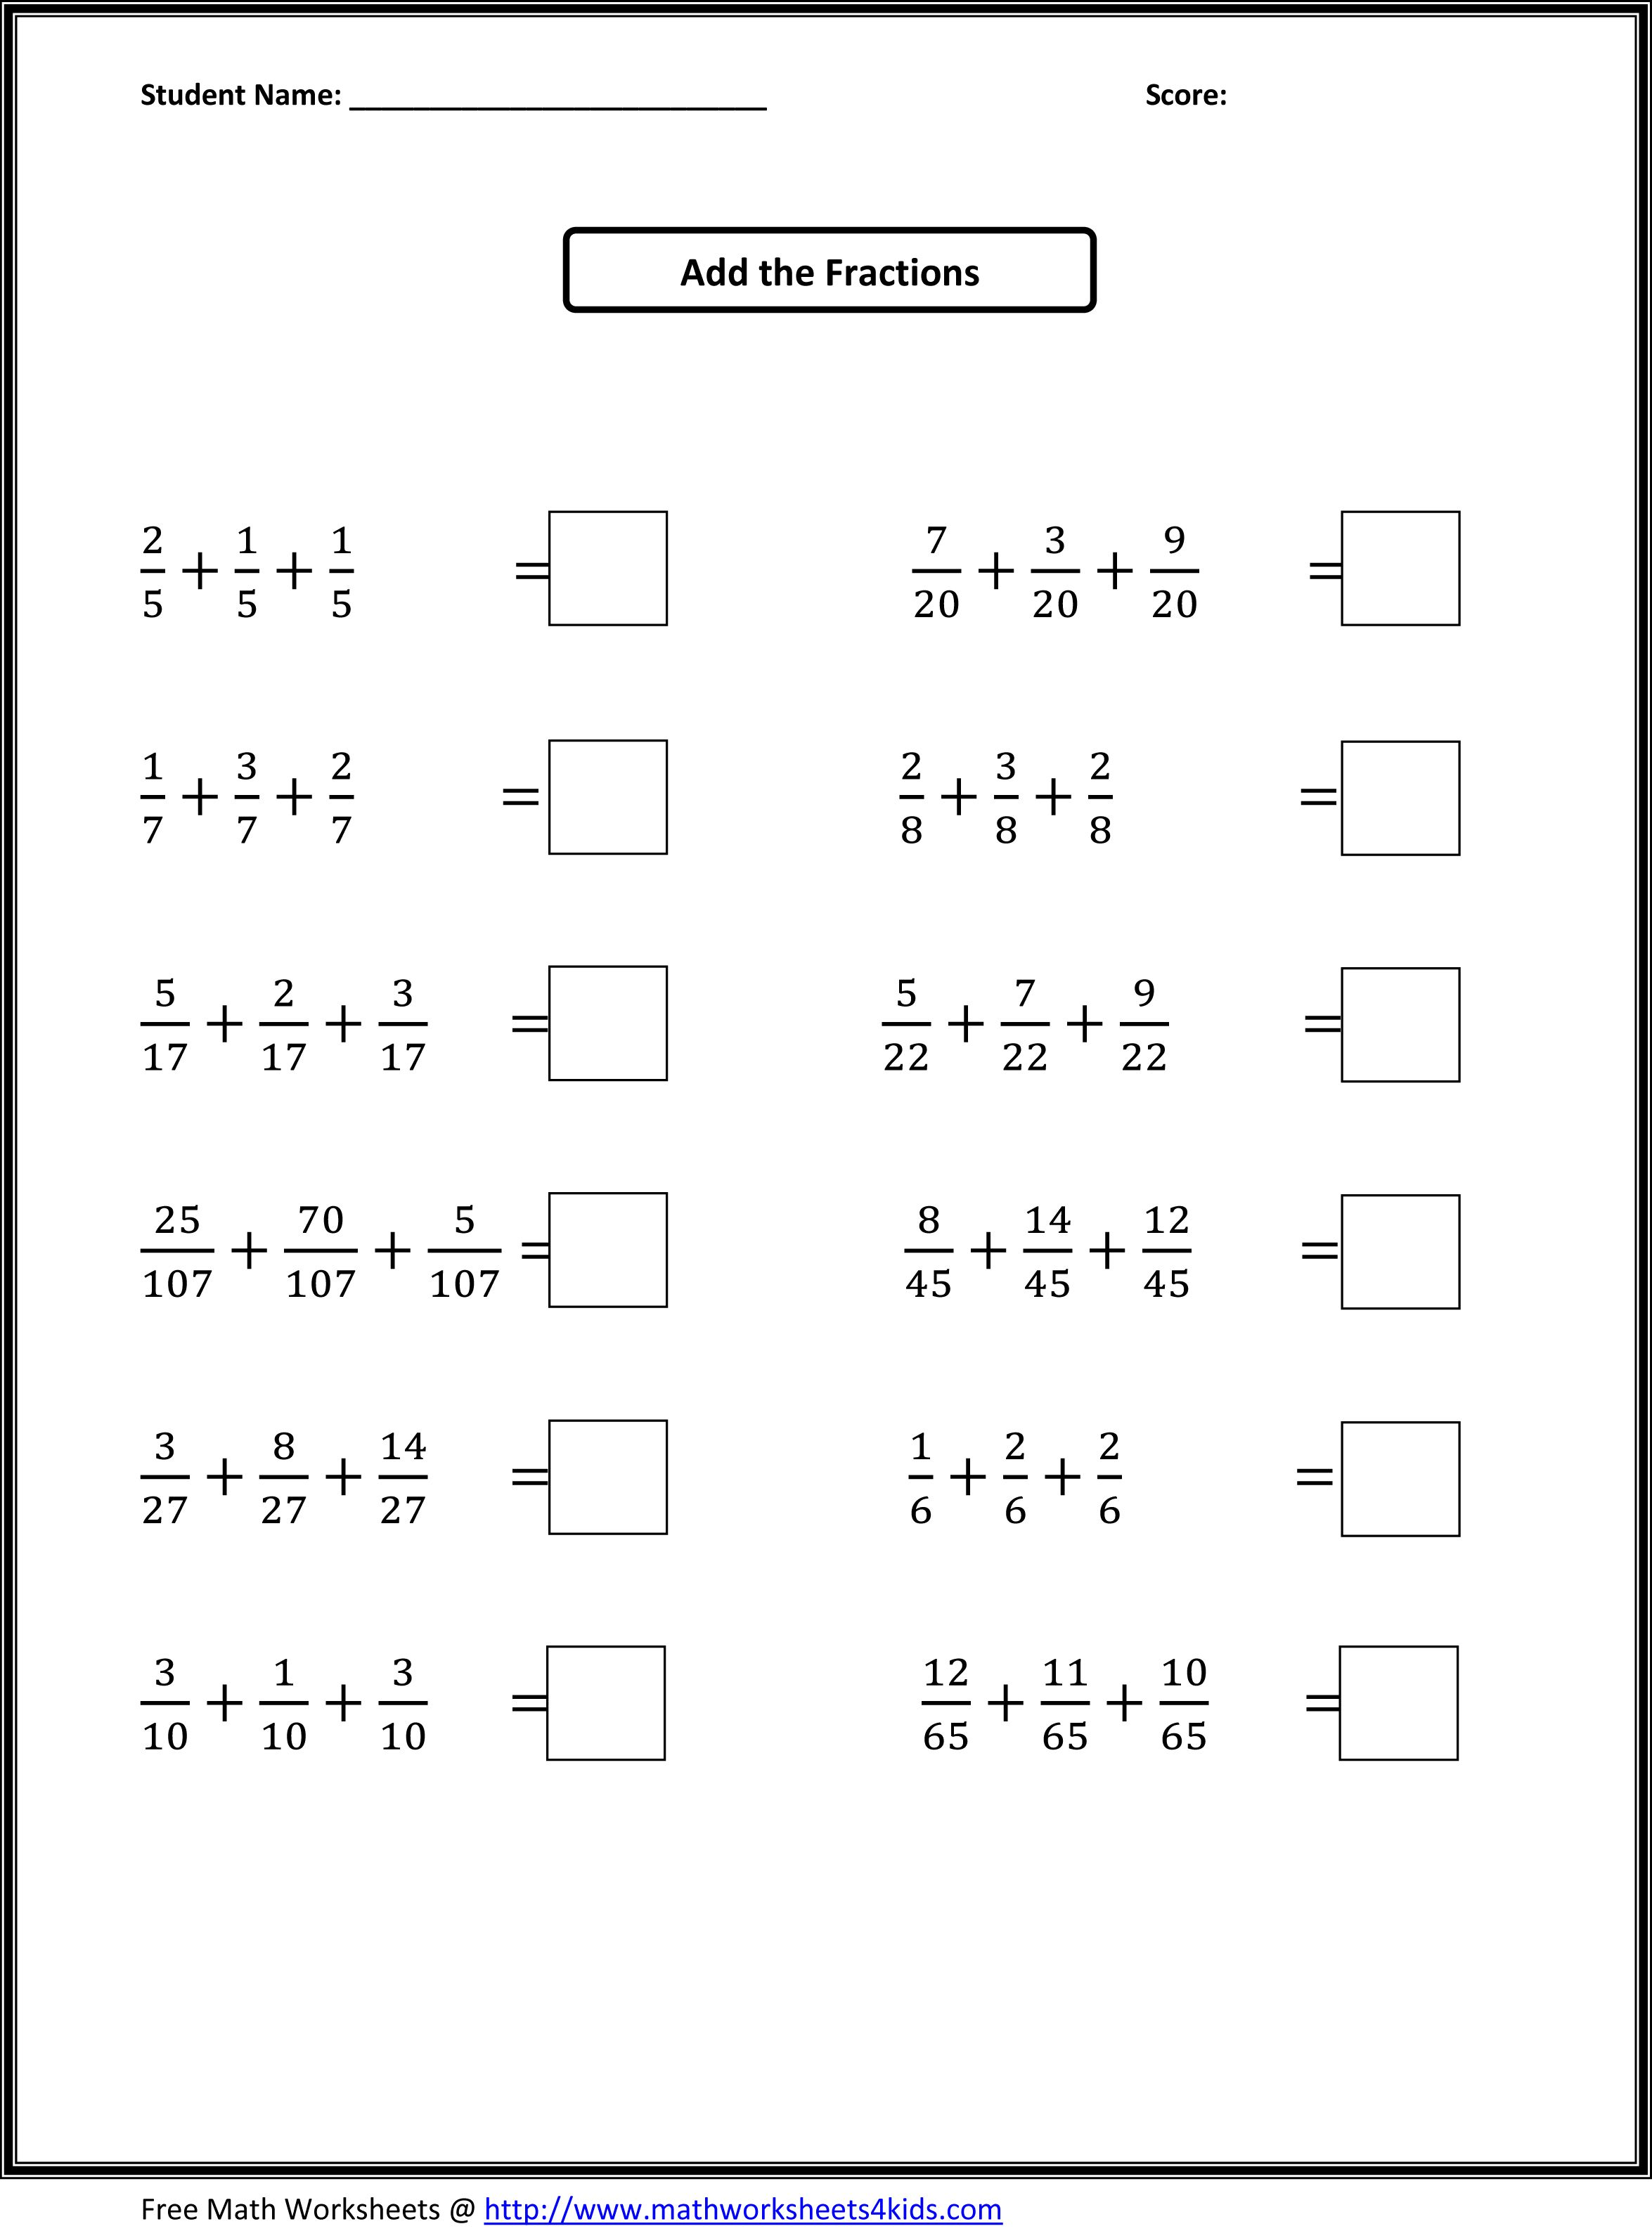 Worksheets 4th Grade Worksheets Math printable worksheets by grade level and skill teaching ideas skill